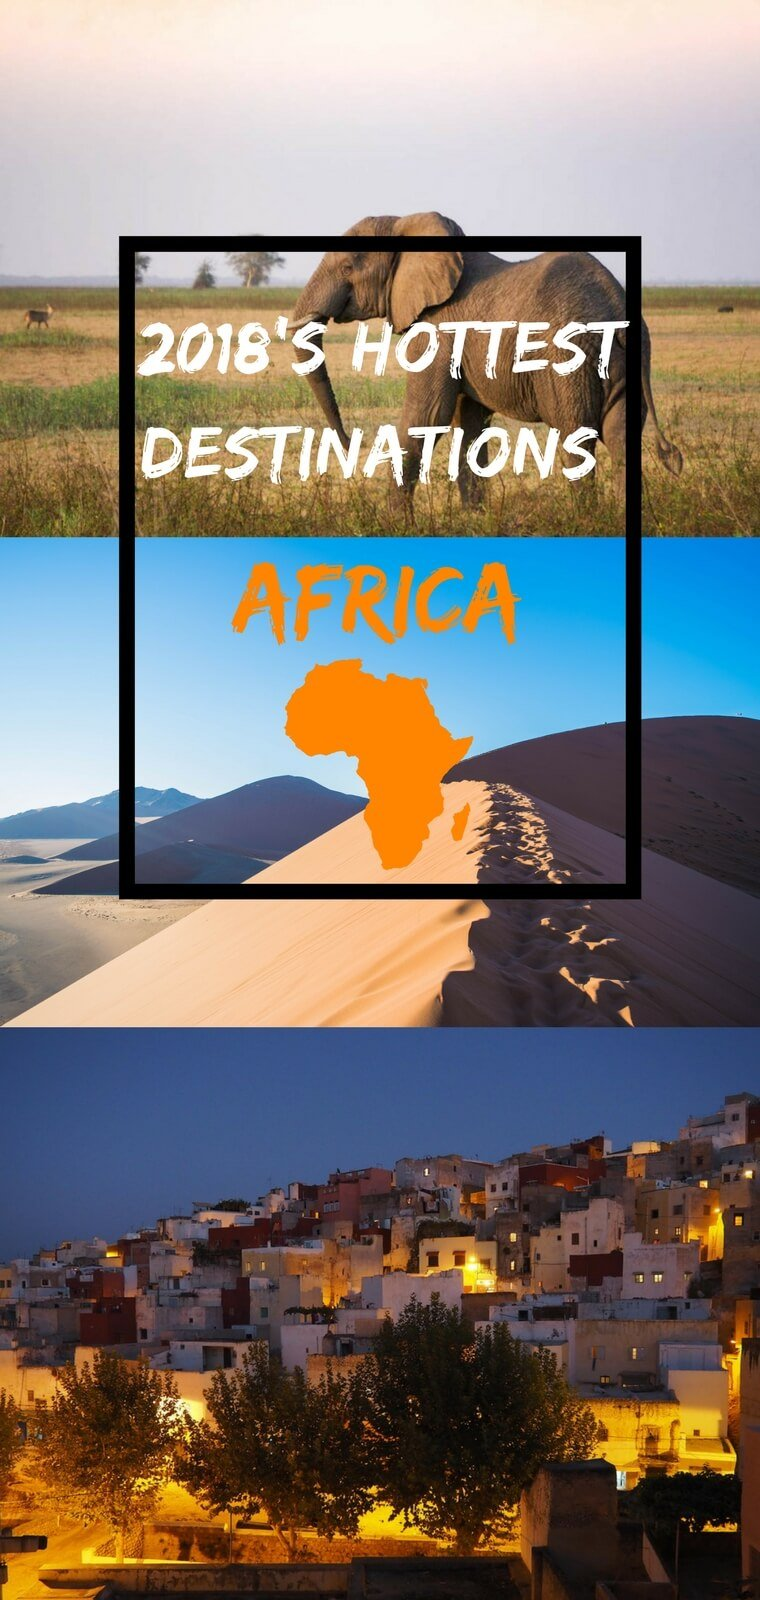 You won't want to miss these awesome destinations in Africa for 2018. From exploring sand dunes in Namibia to dancing the night away in Nairobi, there is a lot more to do on the continent of Africa than just safaris.